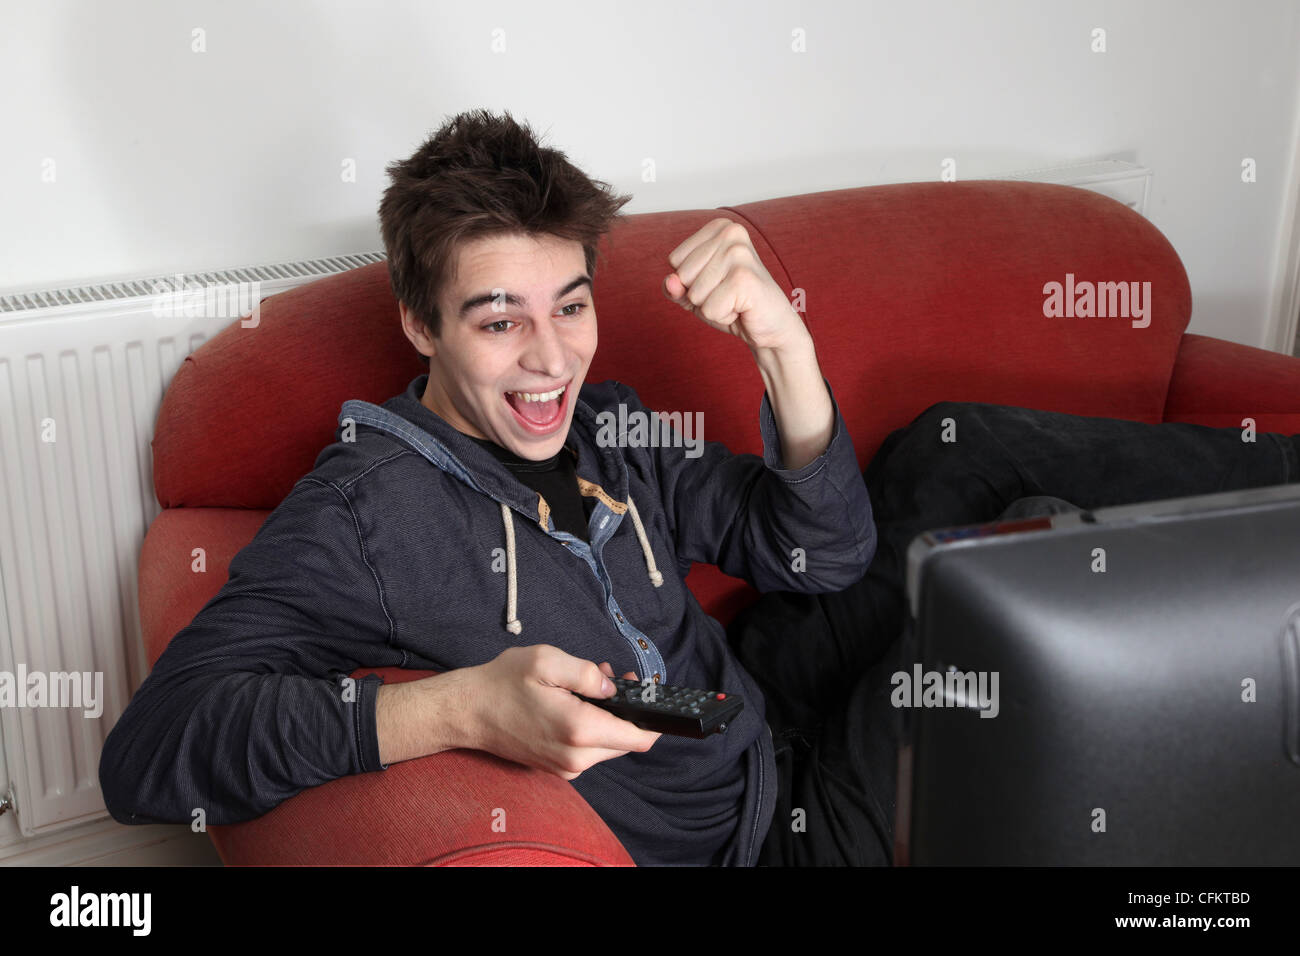 Young man watching tv alone, cheering and punching the air celebrating. - Stock Image